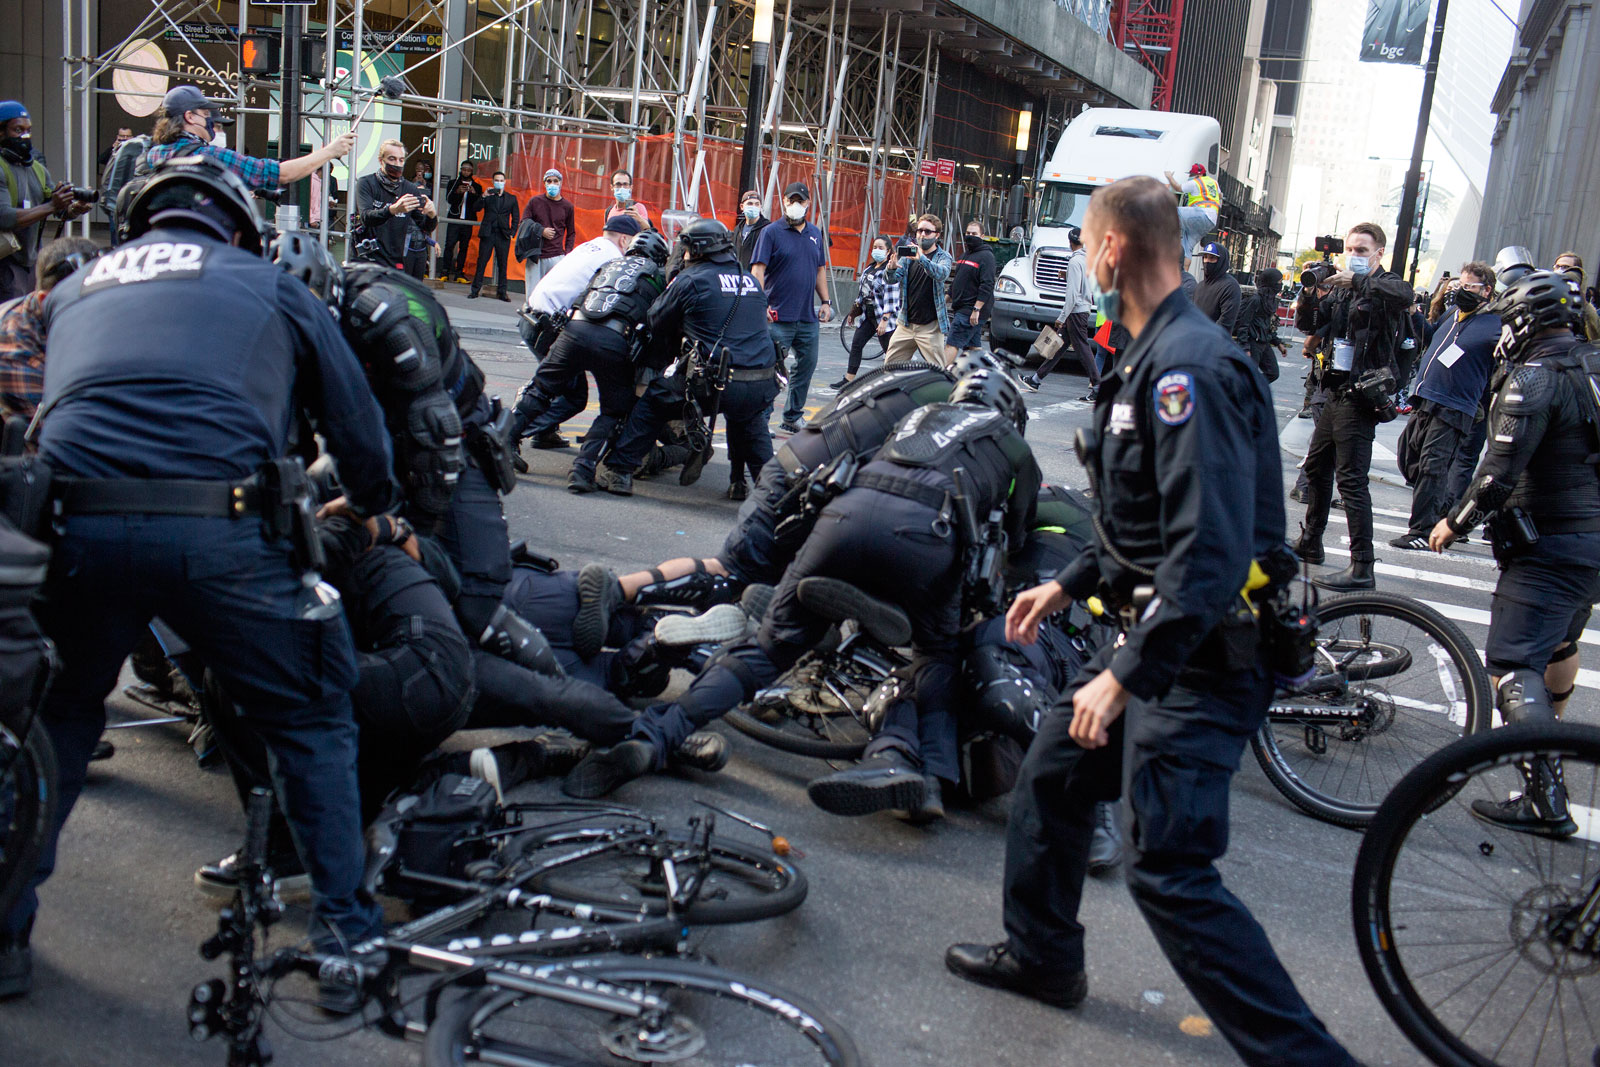 NYPD officers with bikes, wrestling protestors to the ground in New York